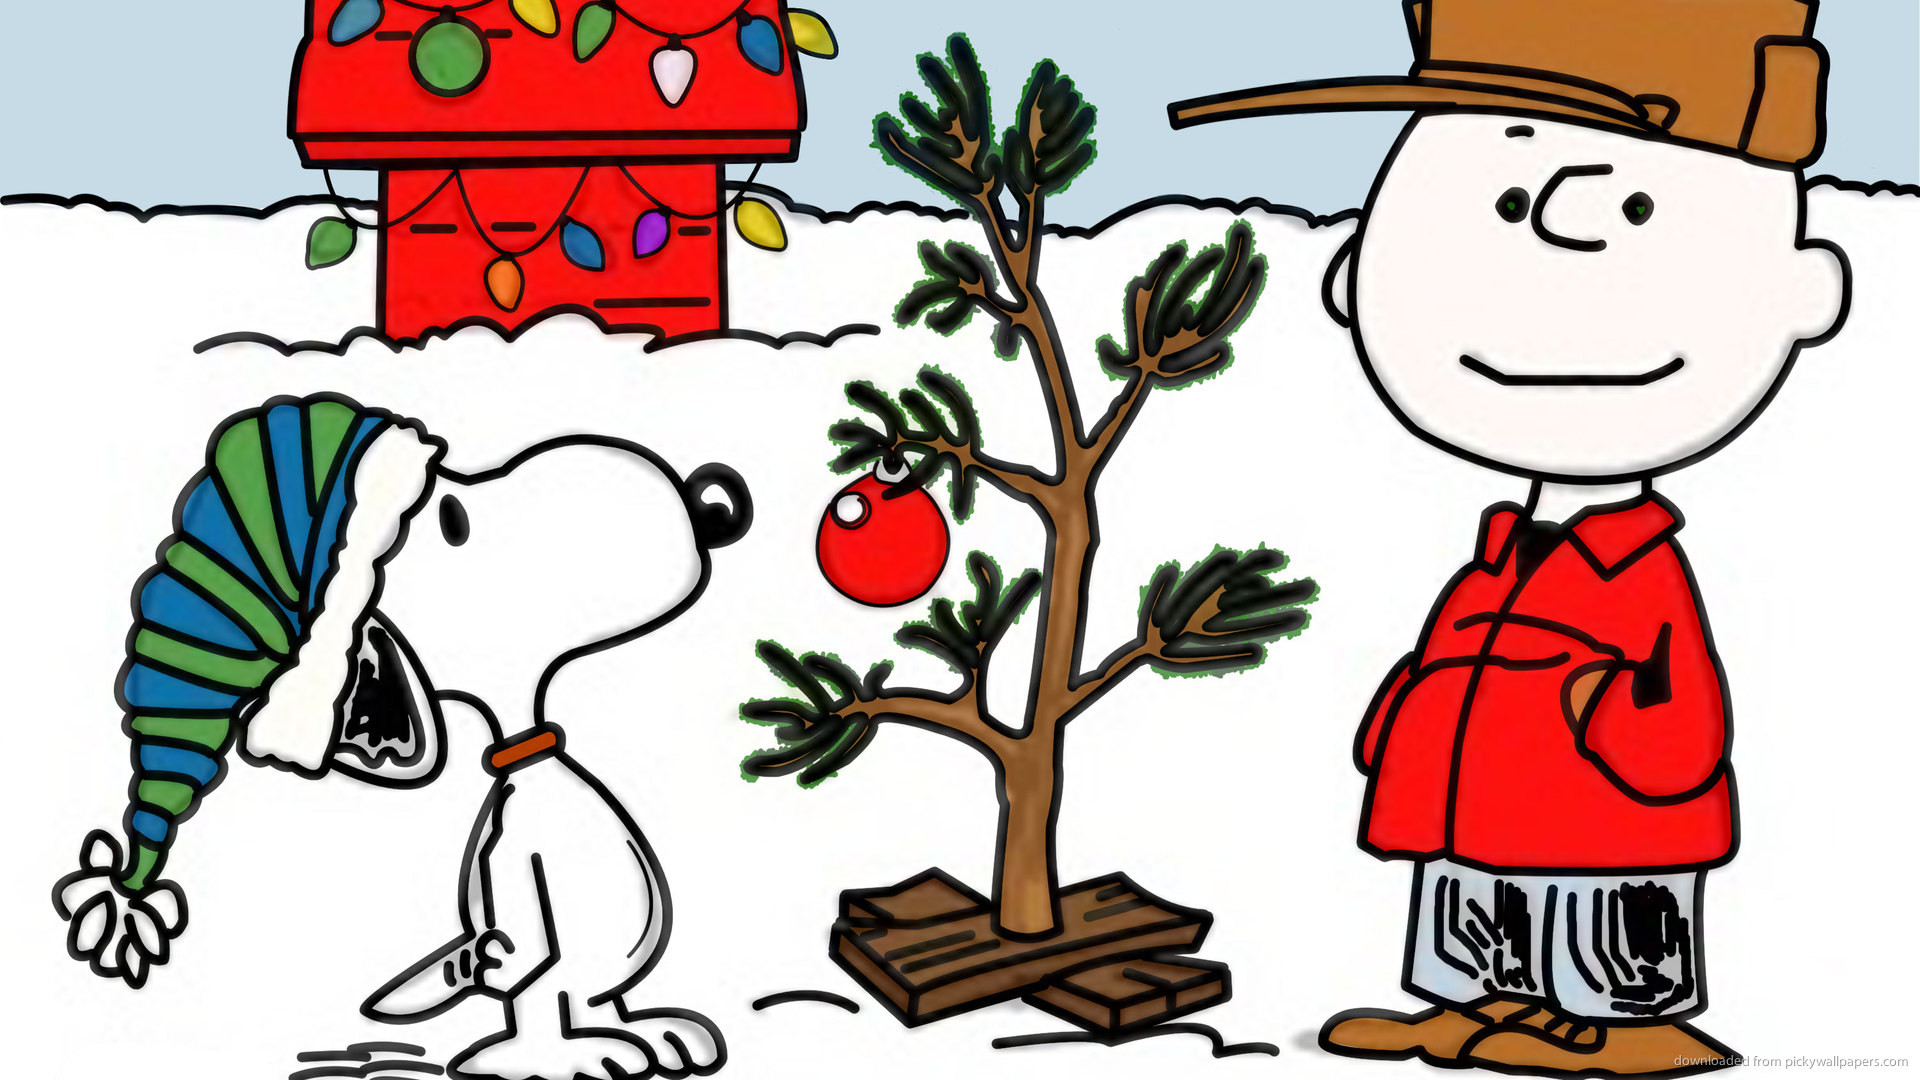 Snoopy Christmas picture